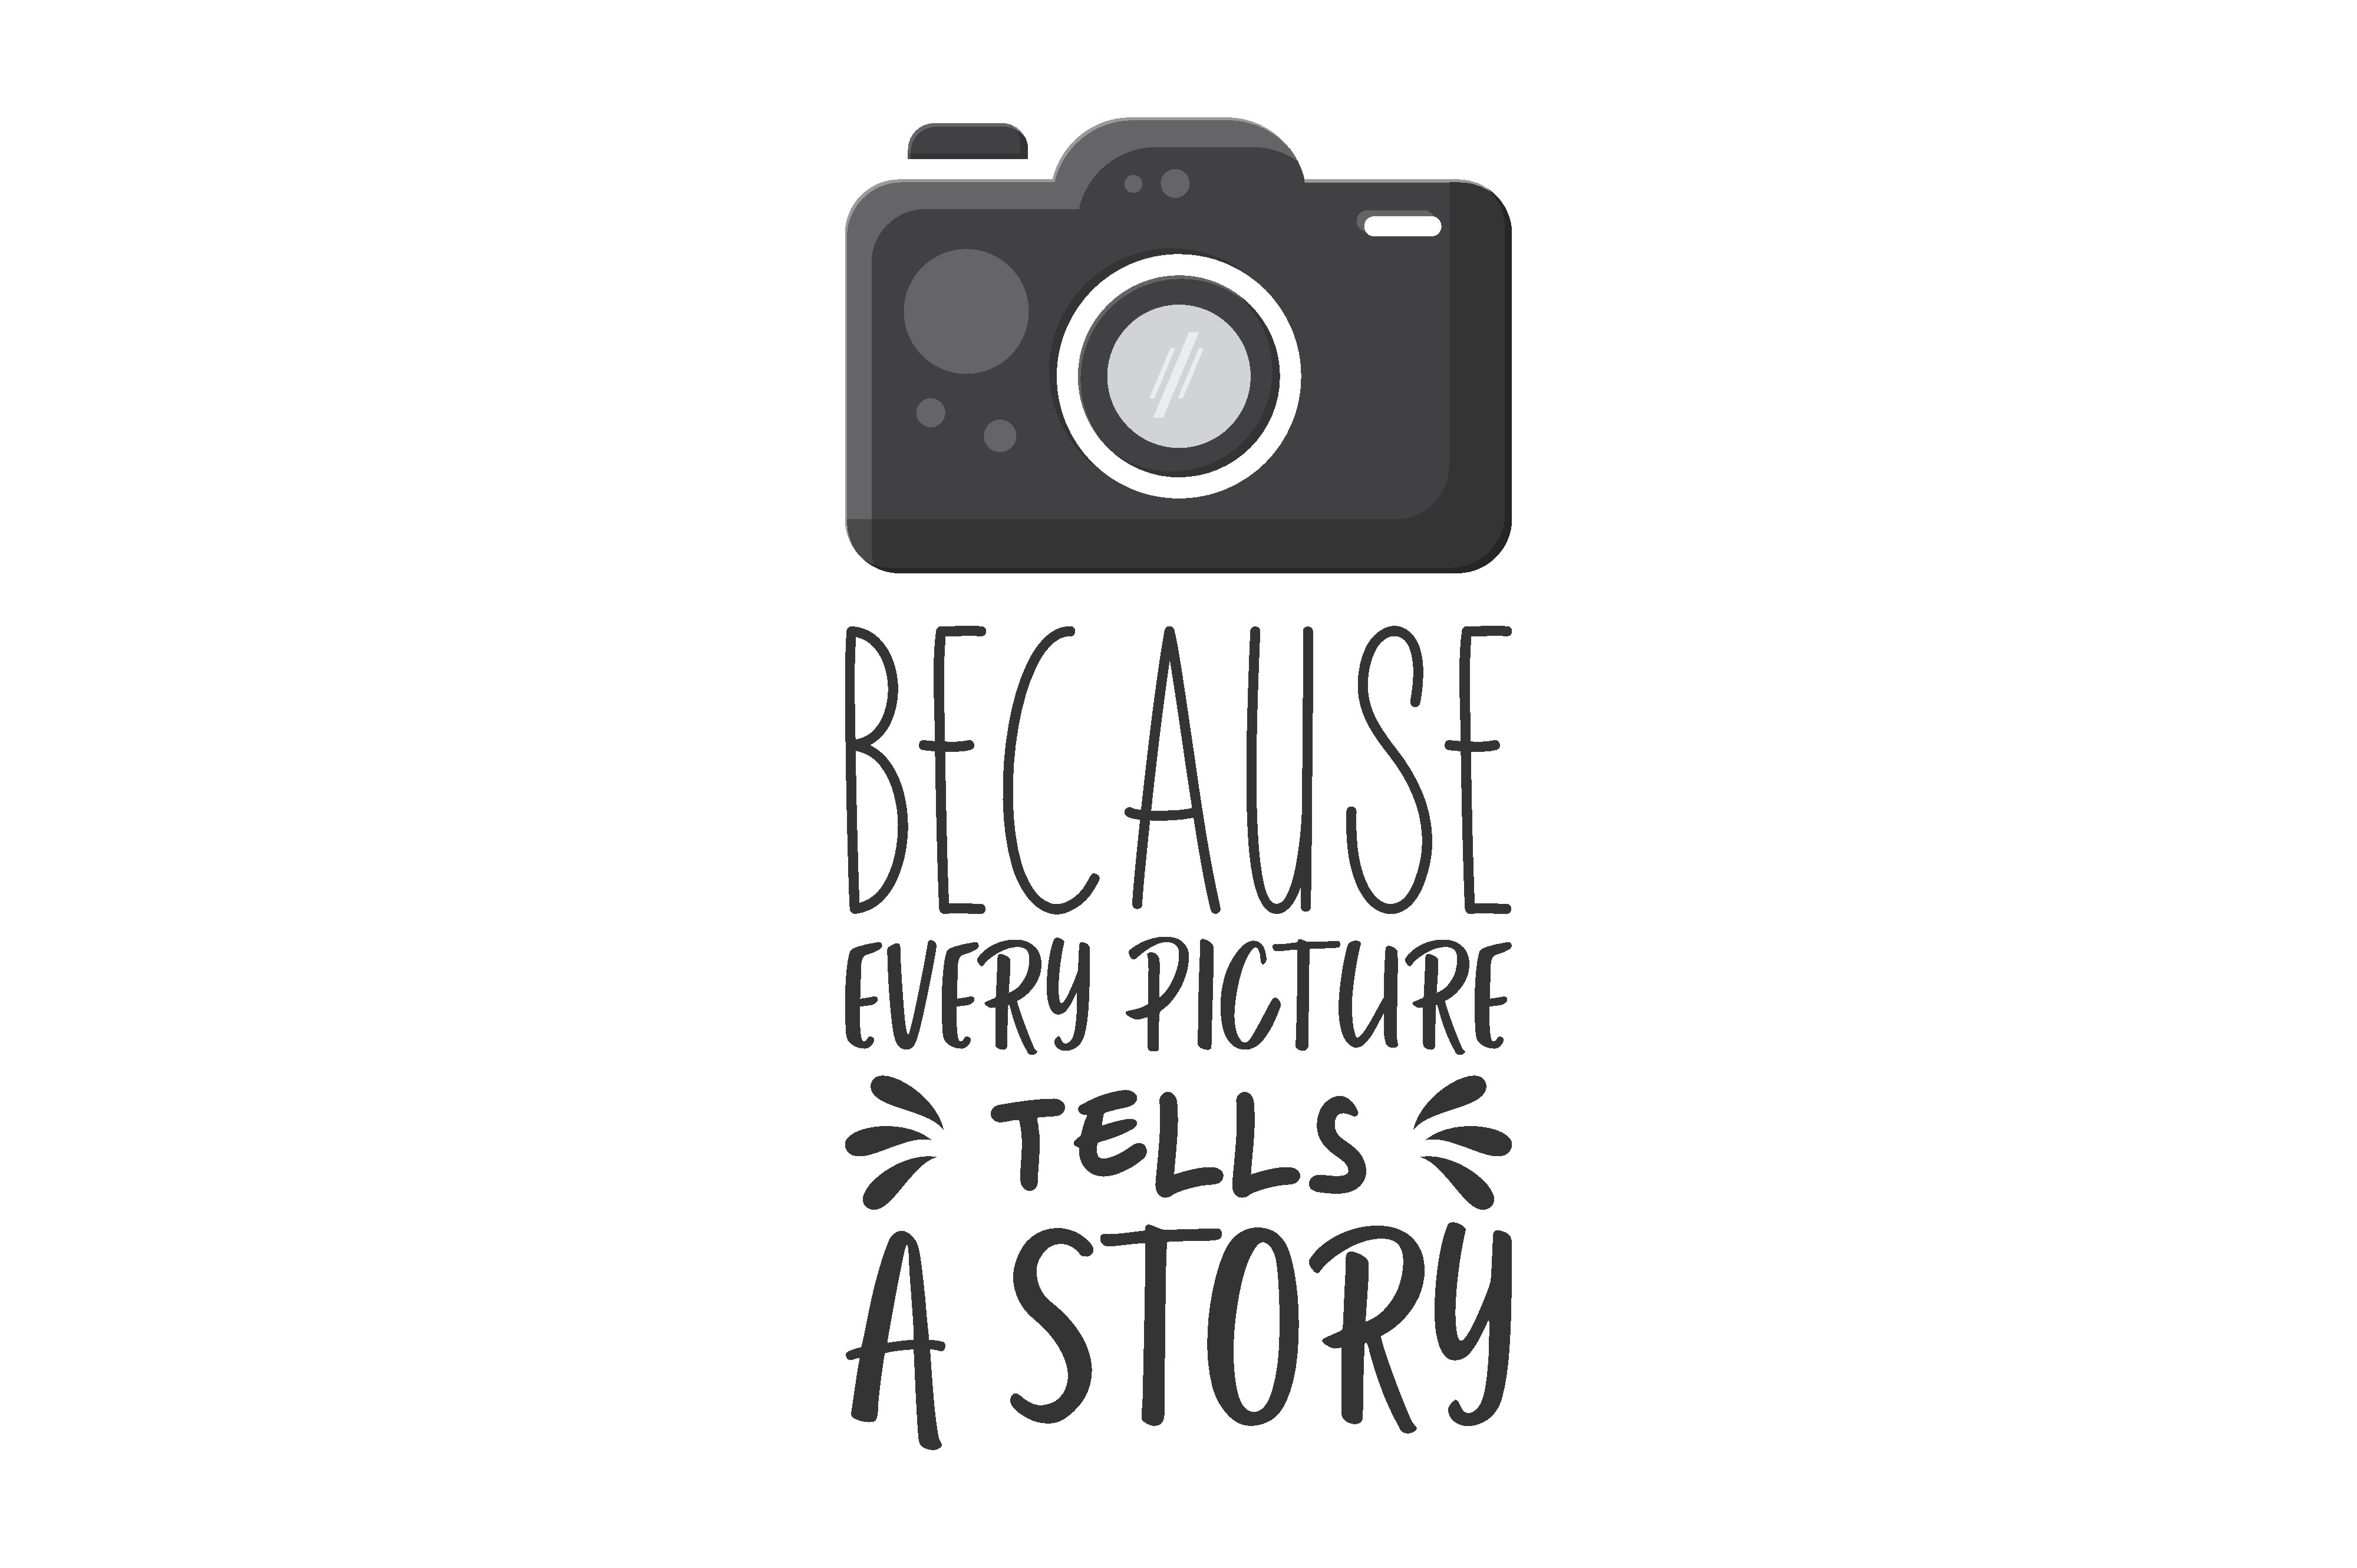 Download Free Because Every Picture Tell A Story Graphic By Chairul Ma Arif for Cricut Explore, Silhouette and other cutting machines.